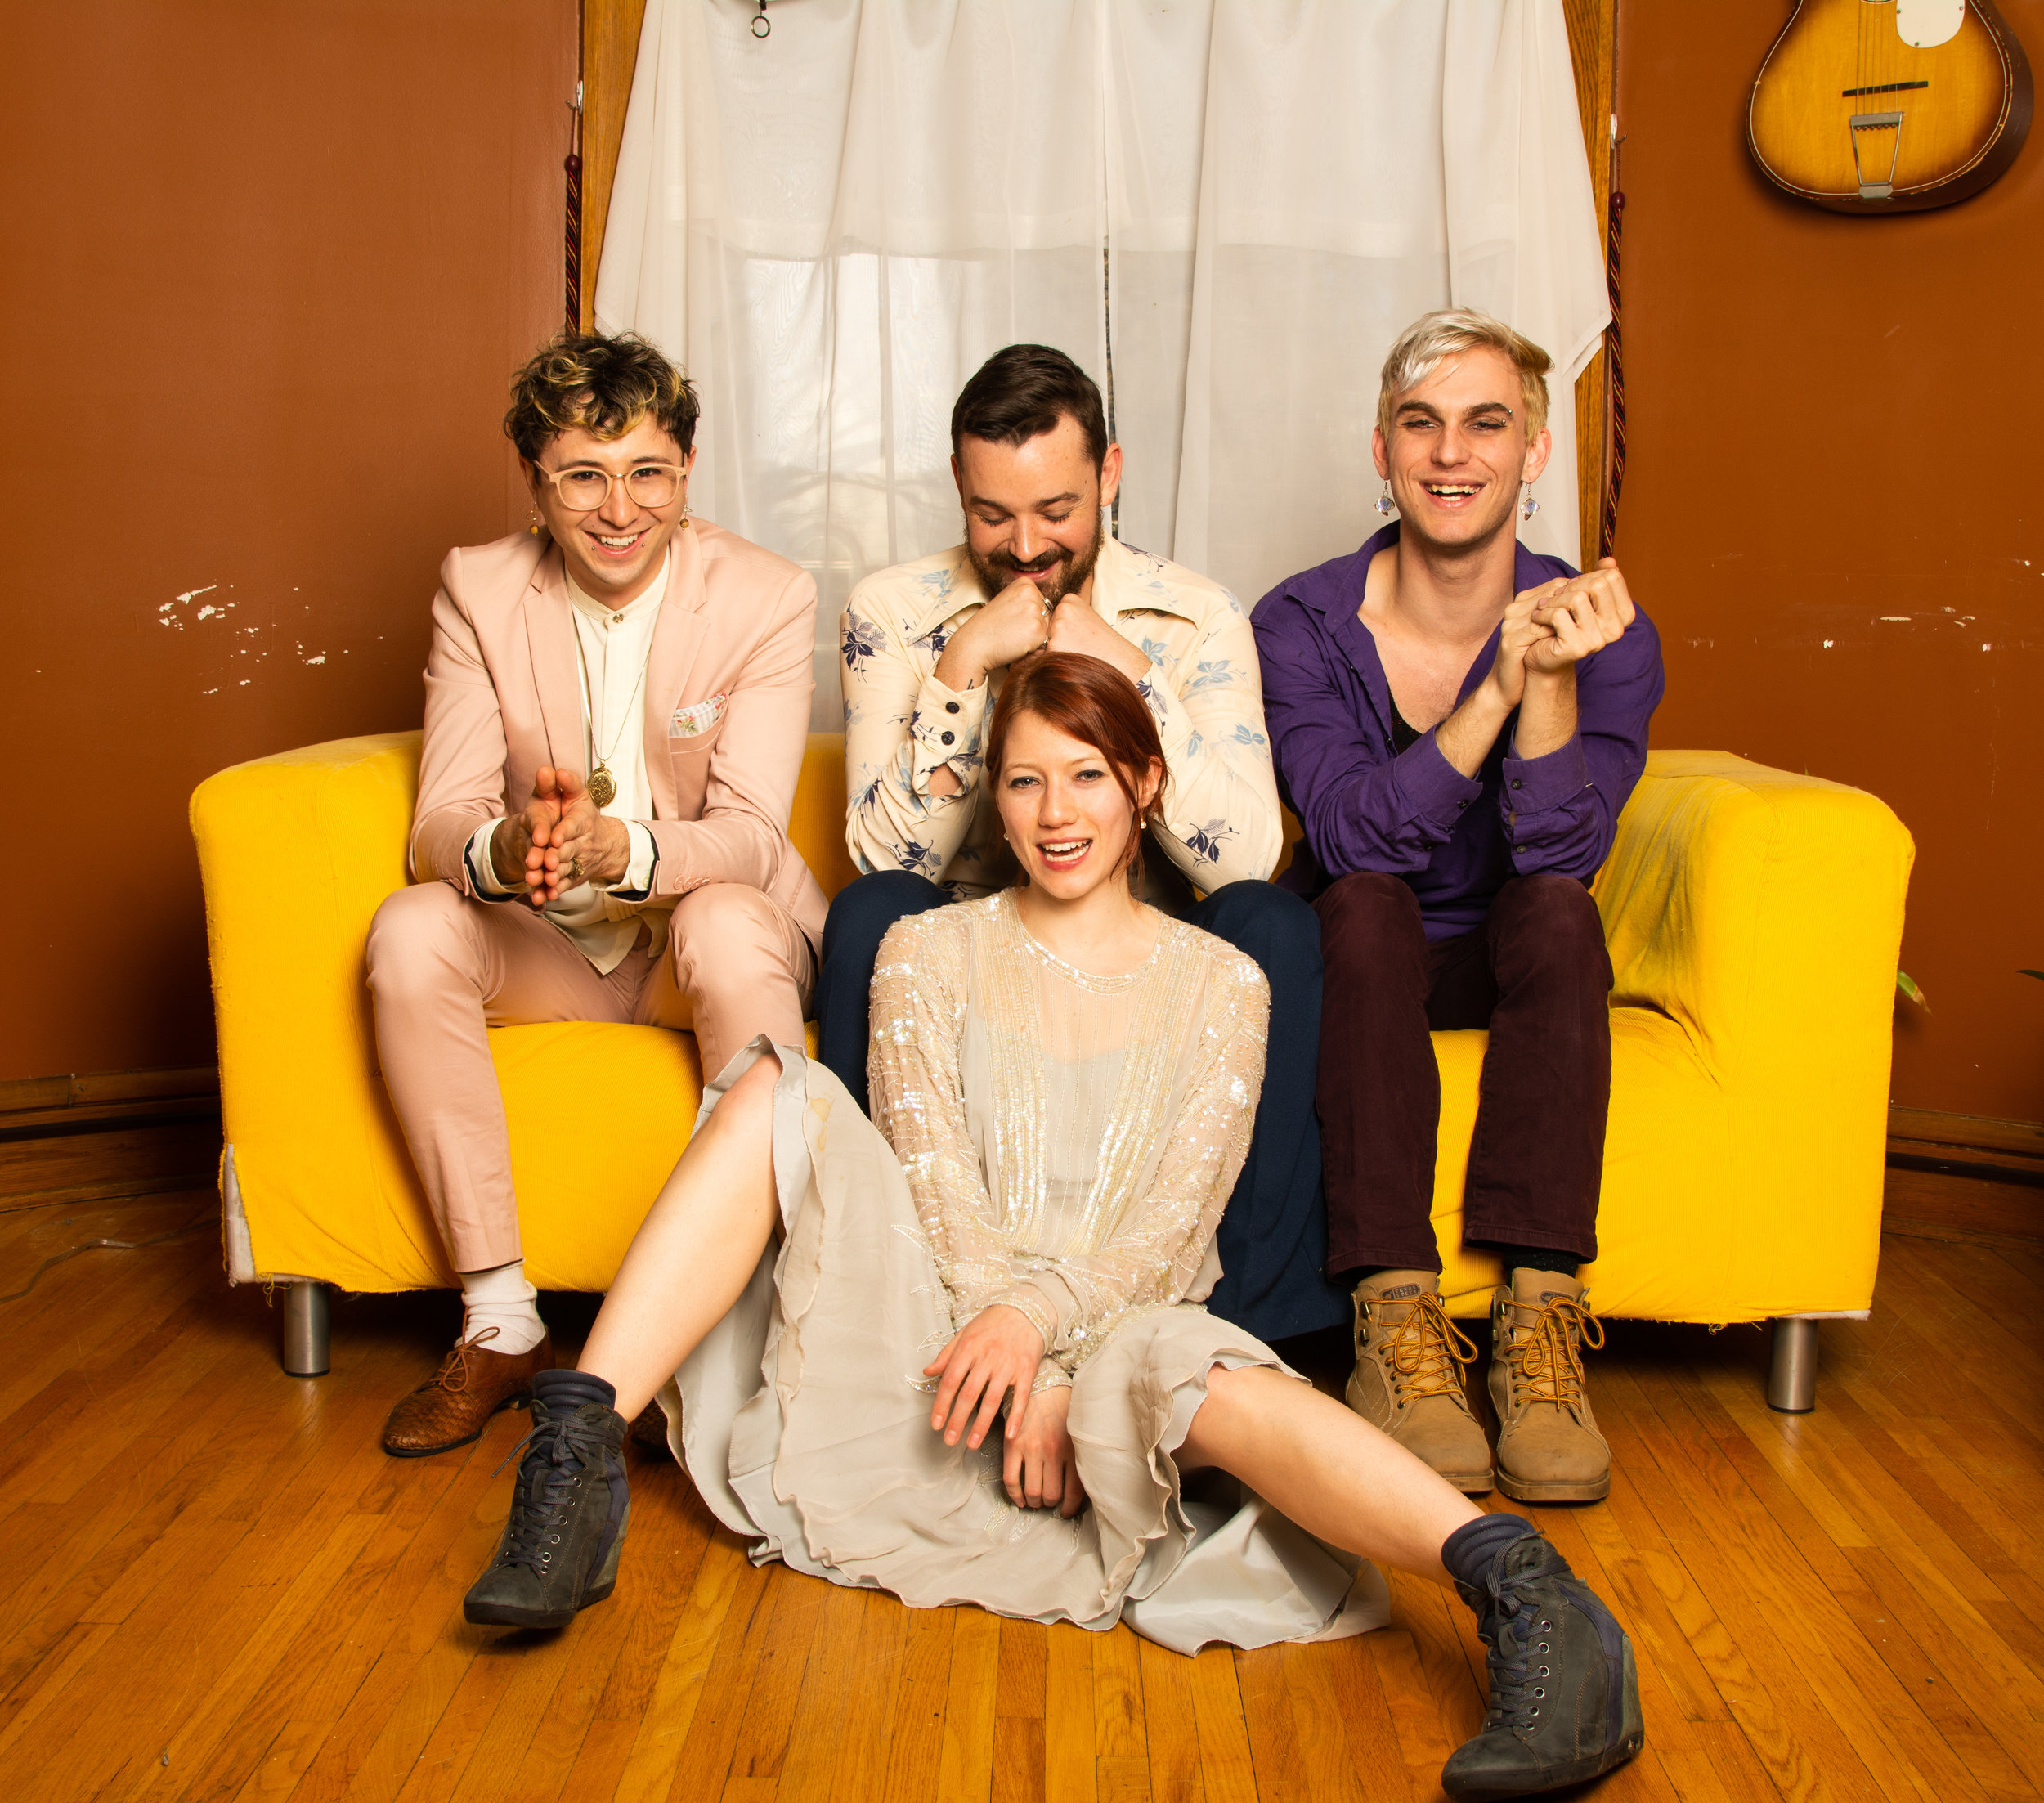 Photo by Chloe Krenz   . Lunch Duchess is:    Katharine Seggerman (she/her) - drums, vocals    Nicky Steves (he/them) - synths    Sam Frederick (they/them) - guitar    Matthew Sandstedt (he/him) - bass